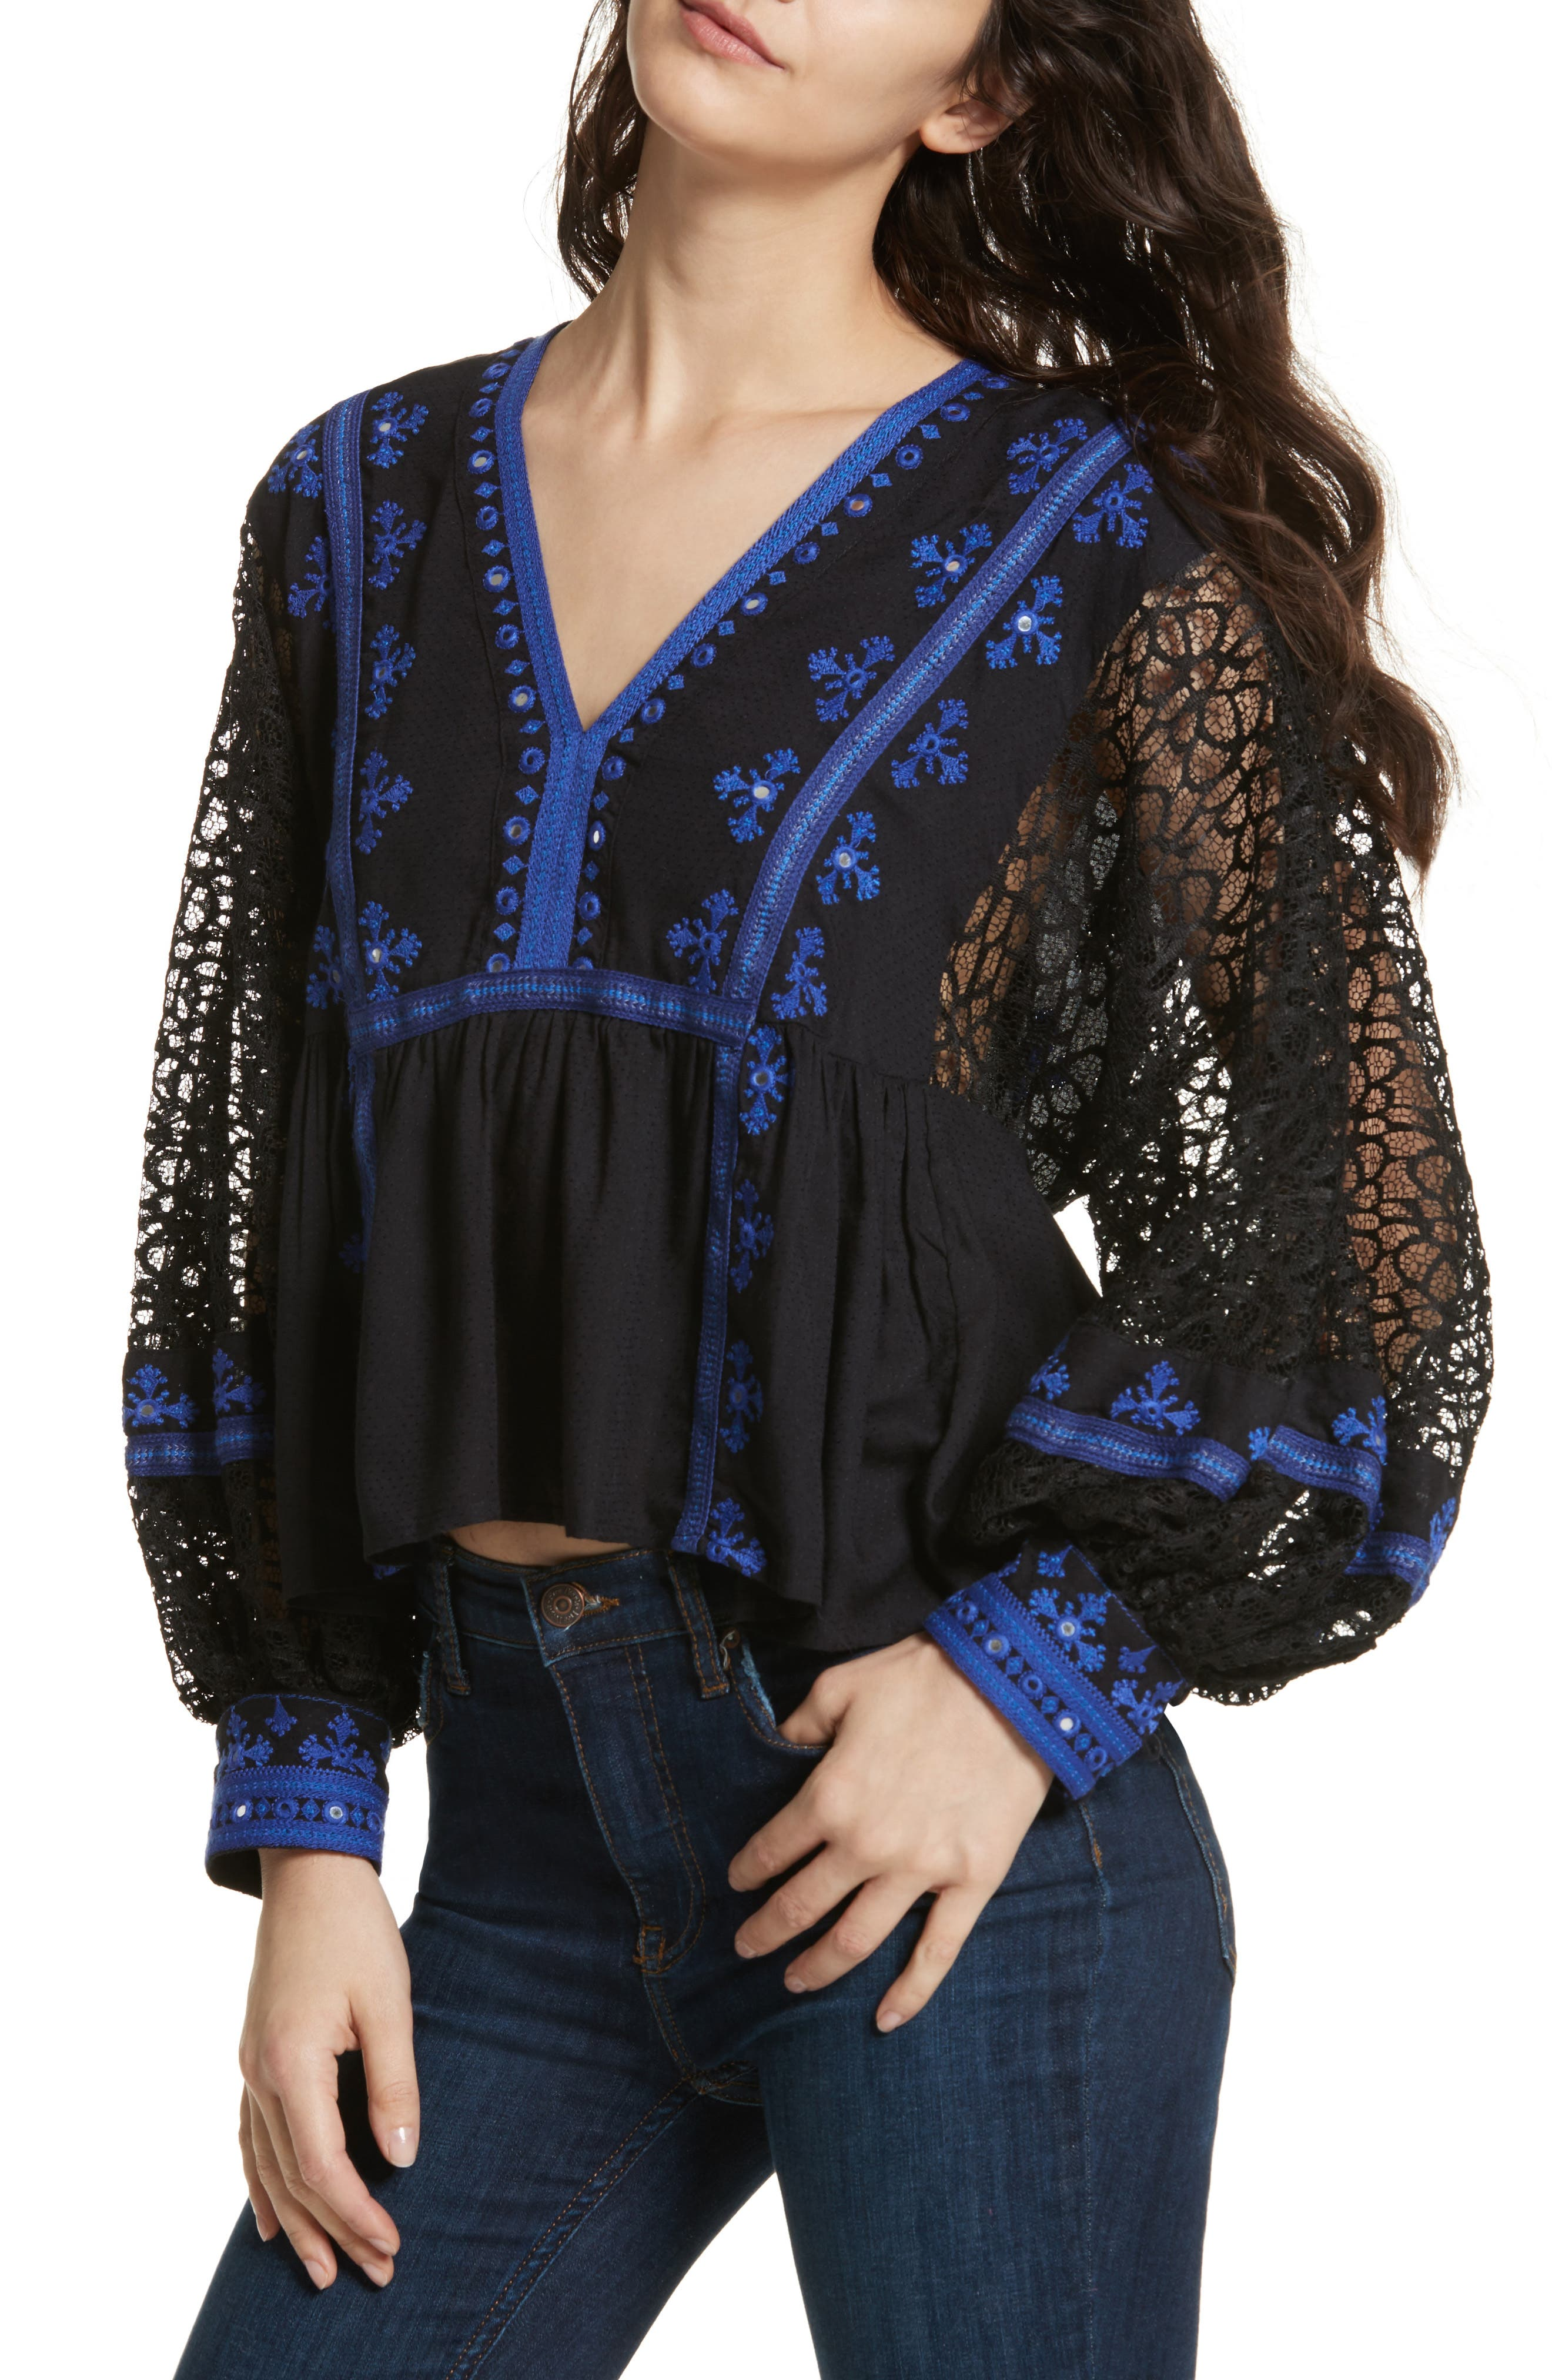 Boogie All Night Blouse,                             Main thumbnail 1, color,                             001